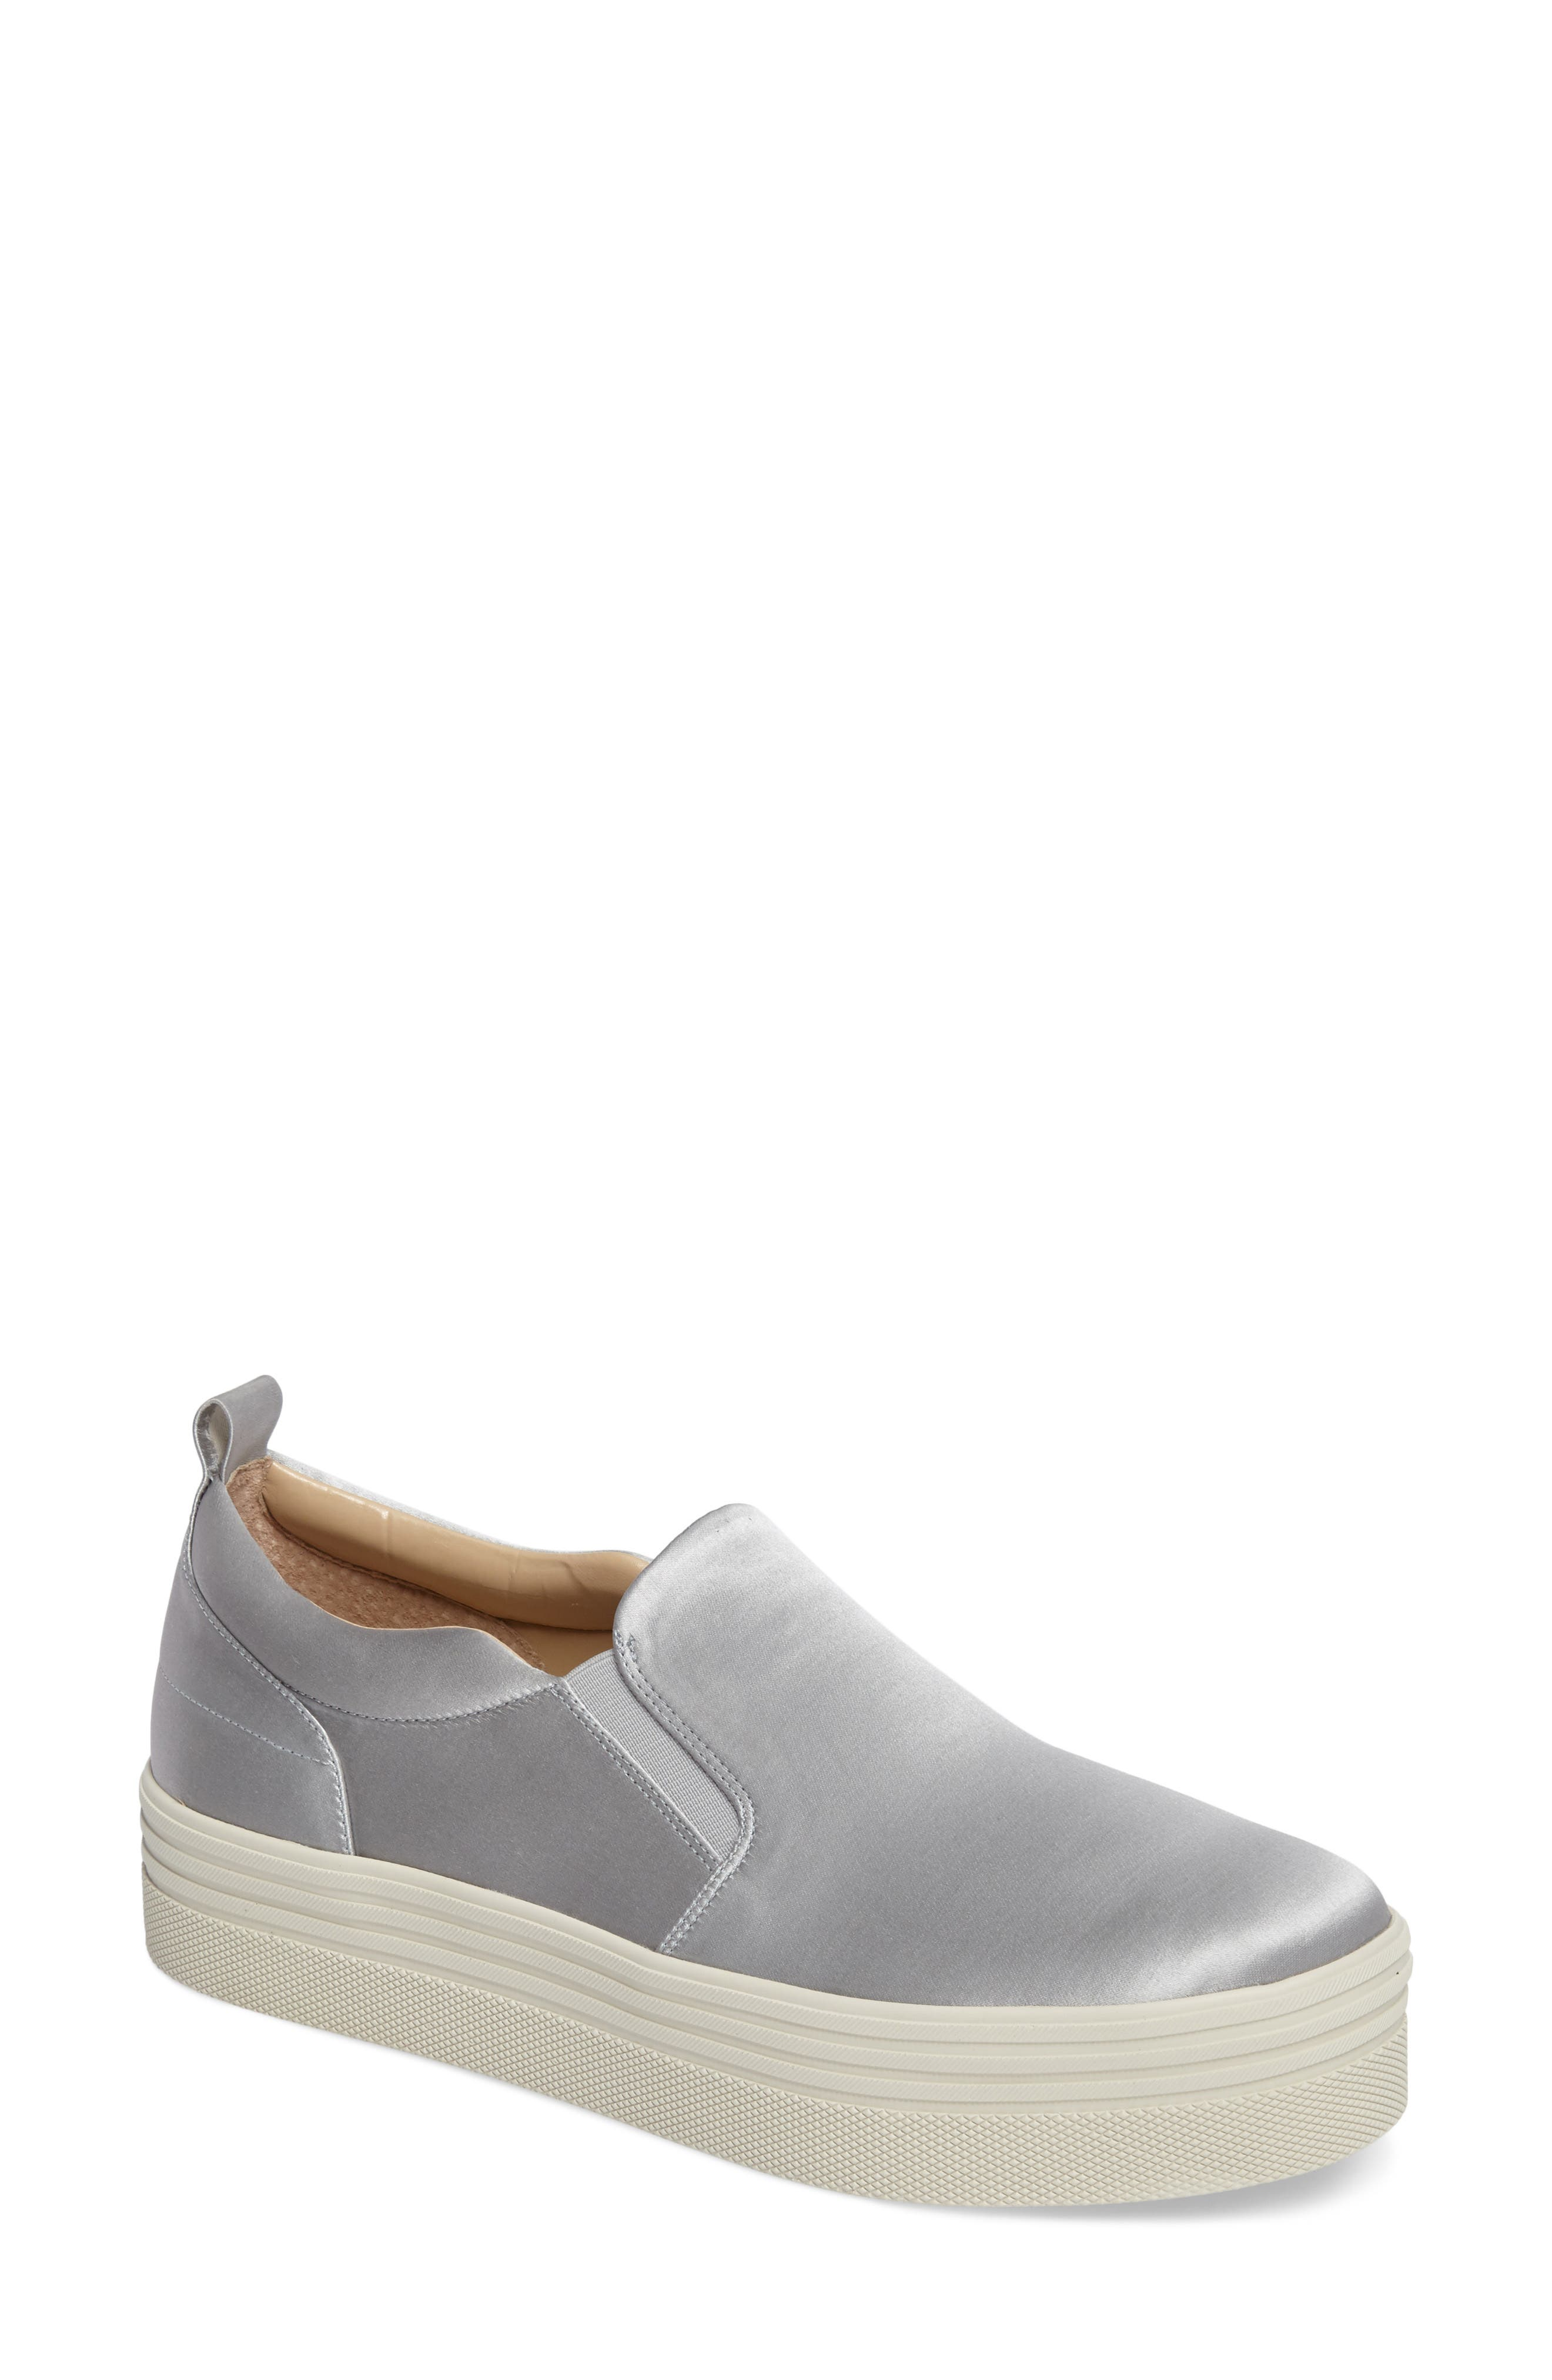 Alternate Image 1 Selected - Marc Fisher LTD Elise Platform Sneaker (Women)